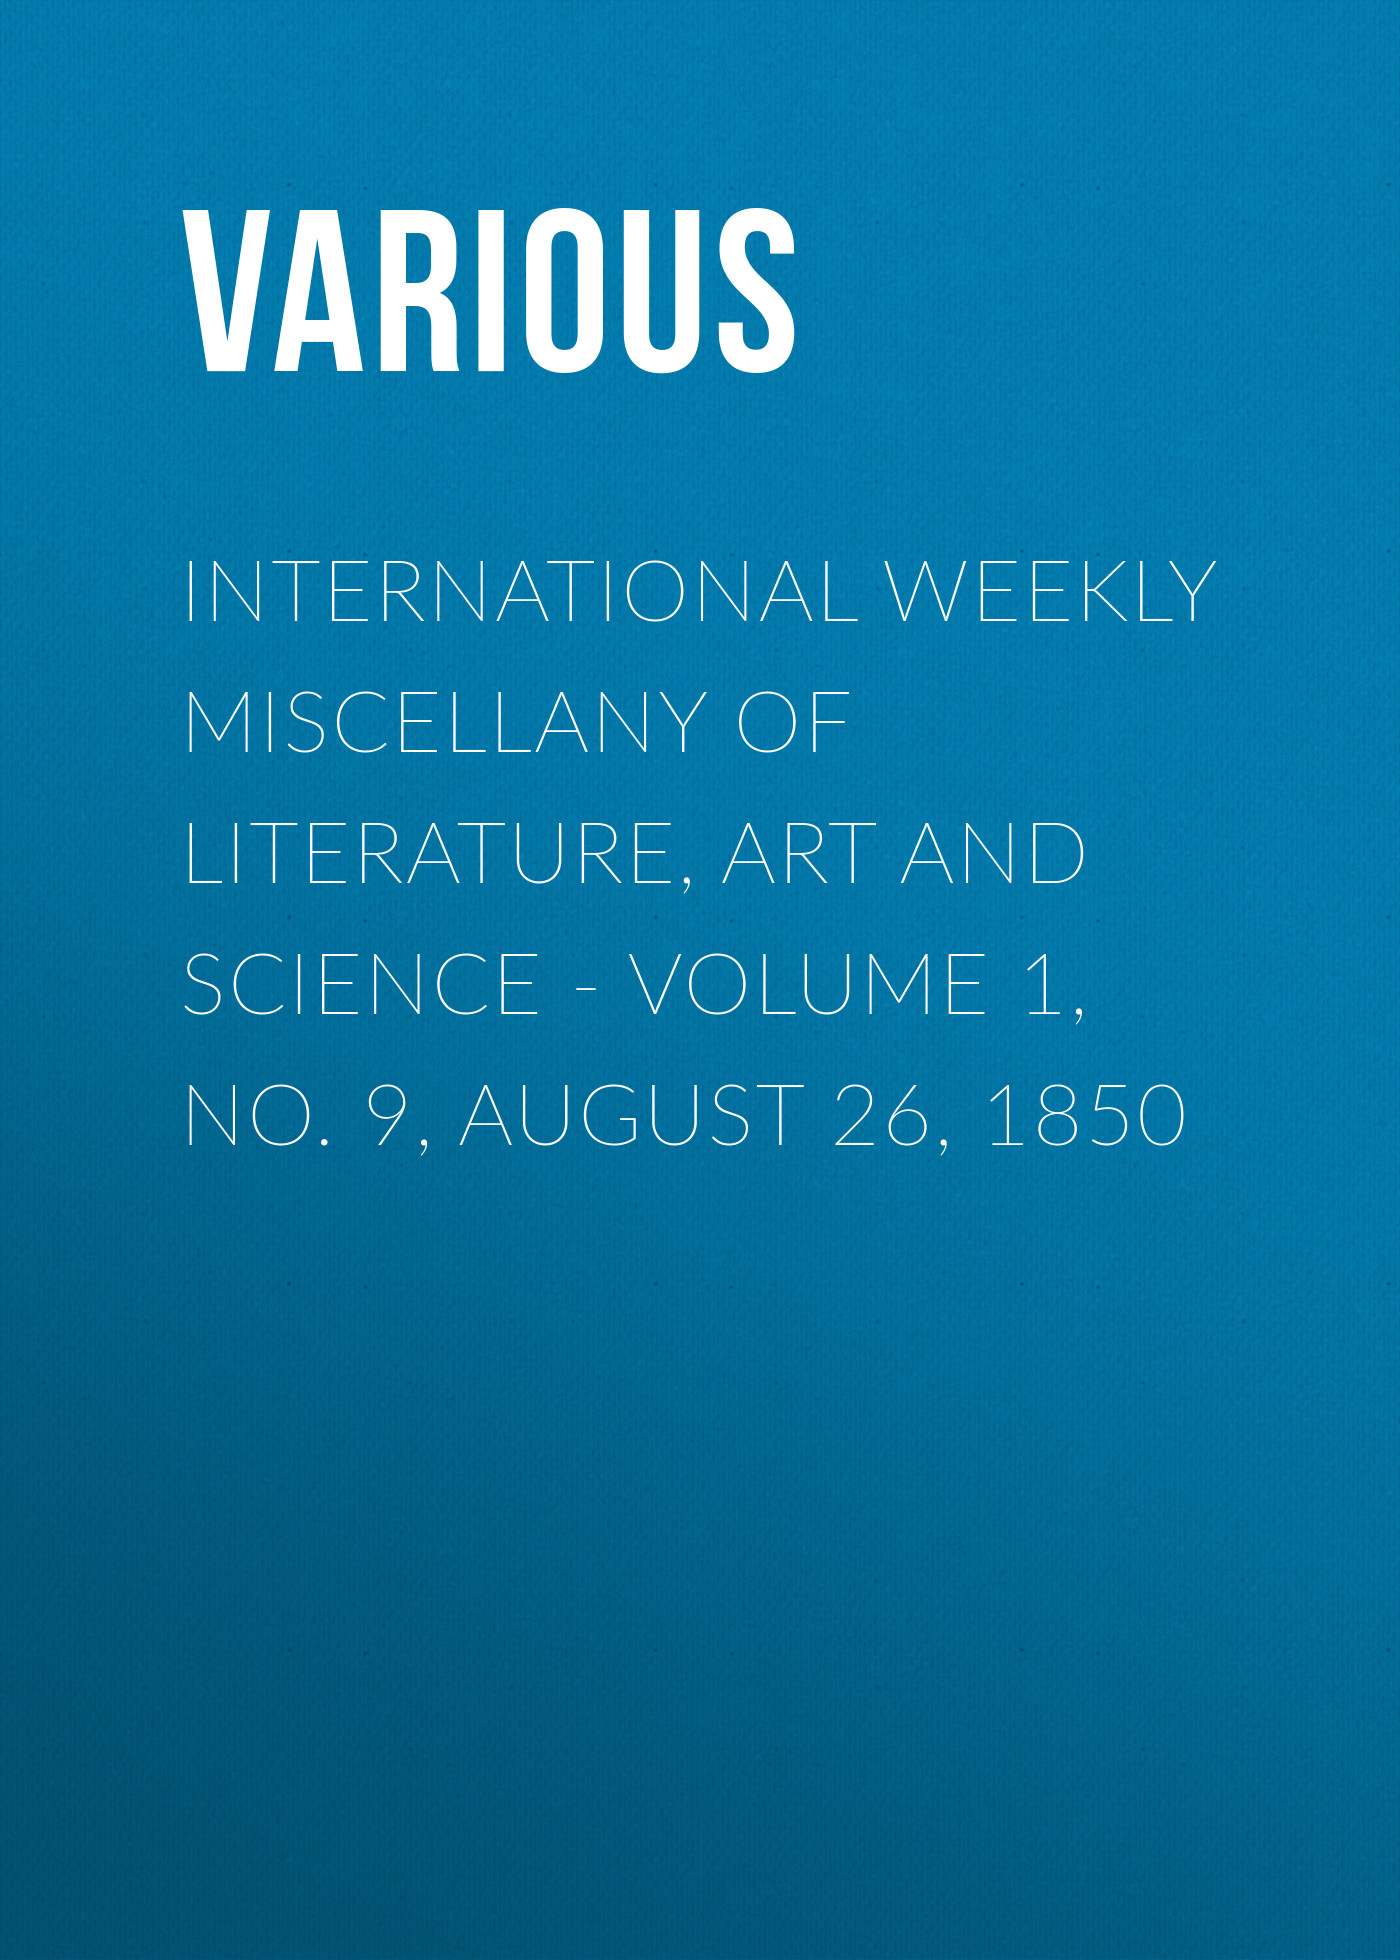 Various International Weekly Miscellany of Literature, Art and Science - Volume 1, No. 9, August 26, 1850 журнал international science project